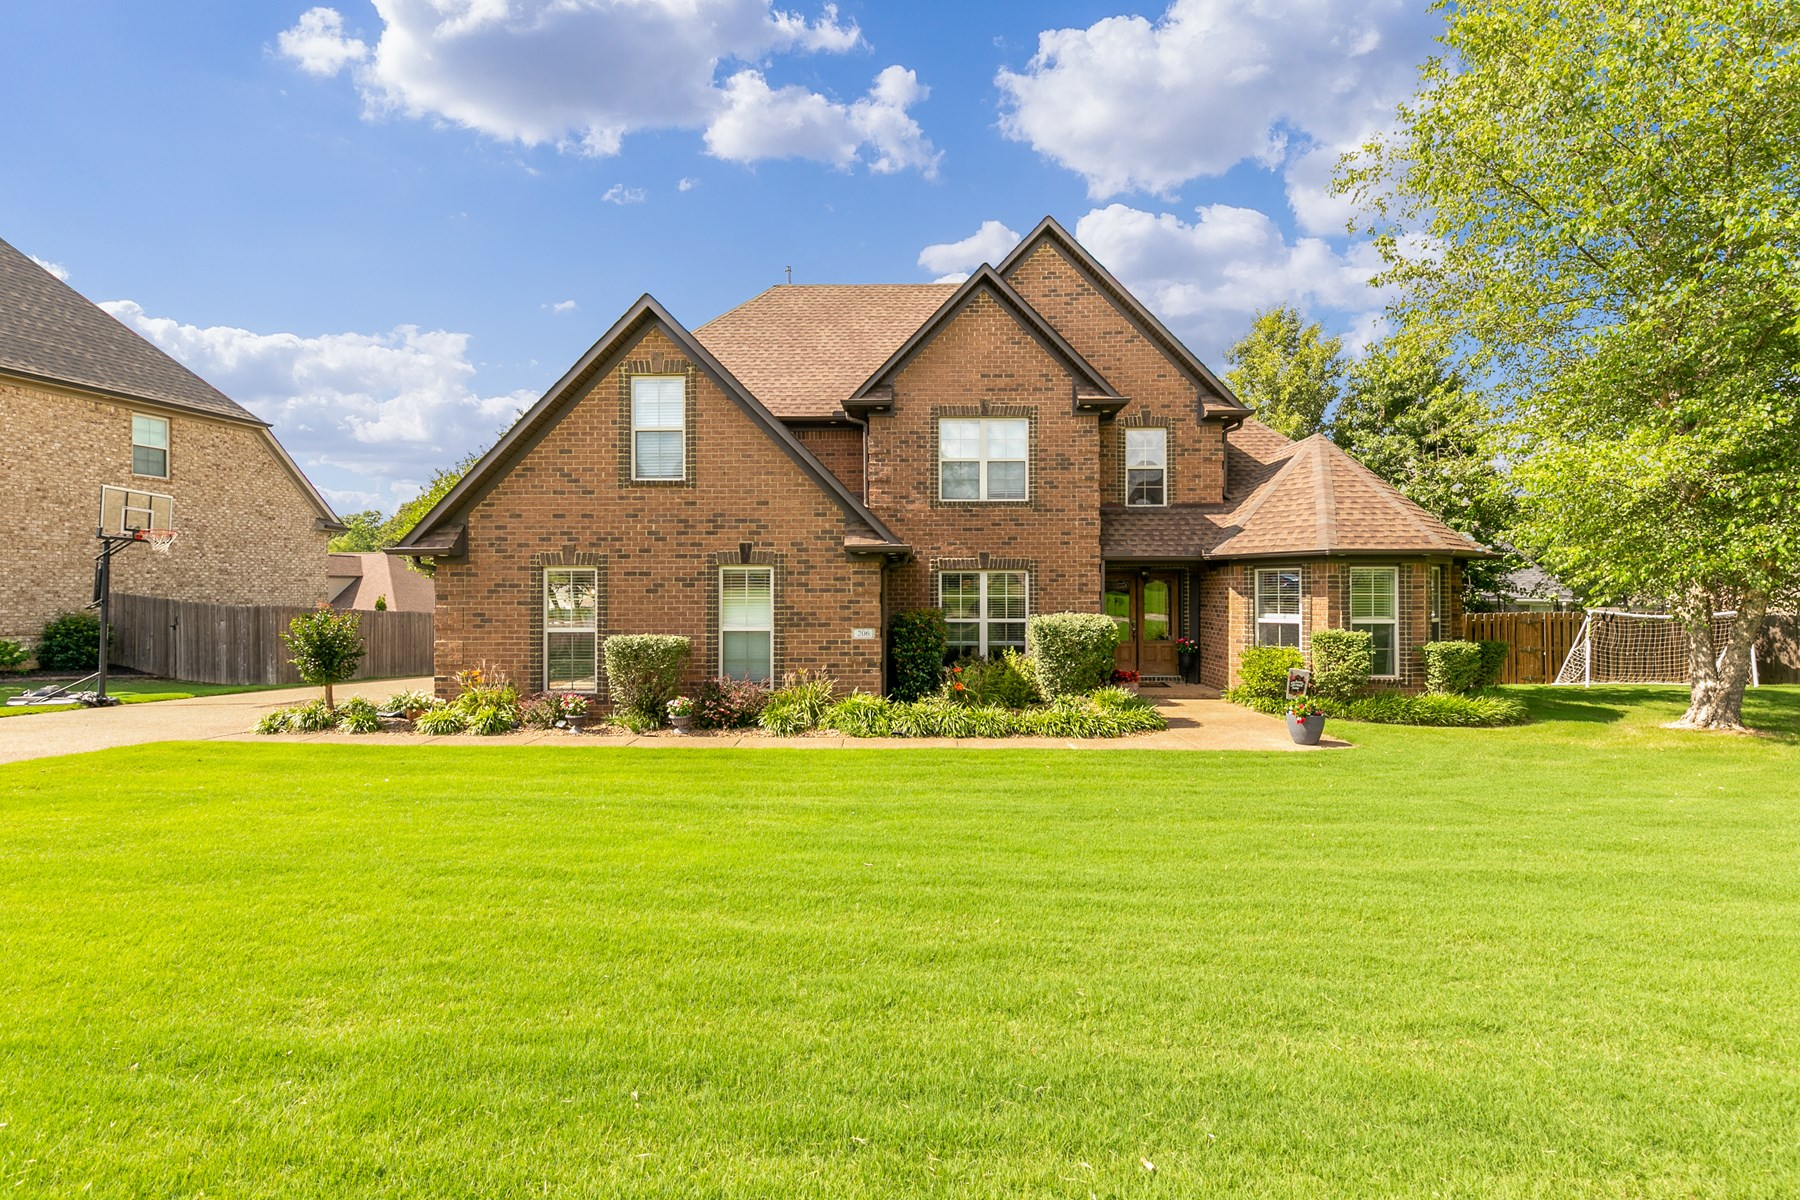 Beautiful Home For Sale Medina, TN 5 Bedrooms with Workshop